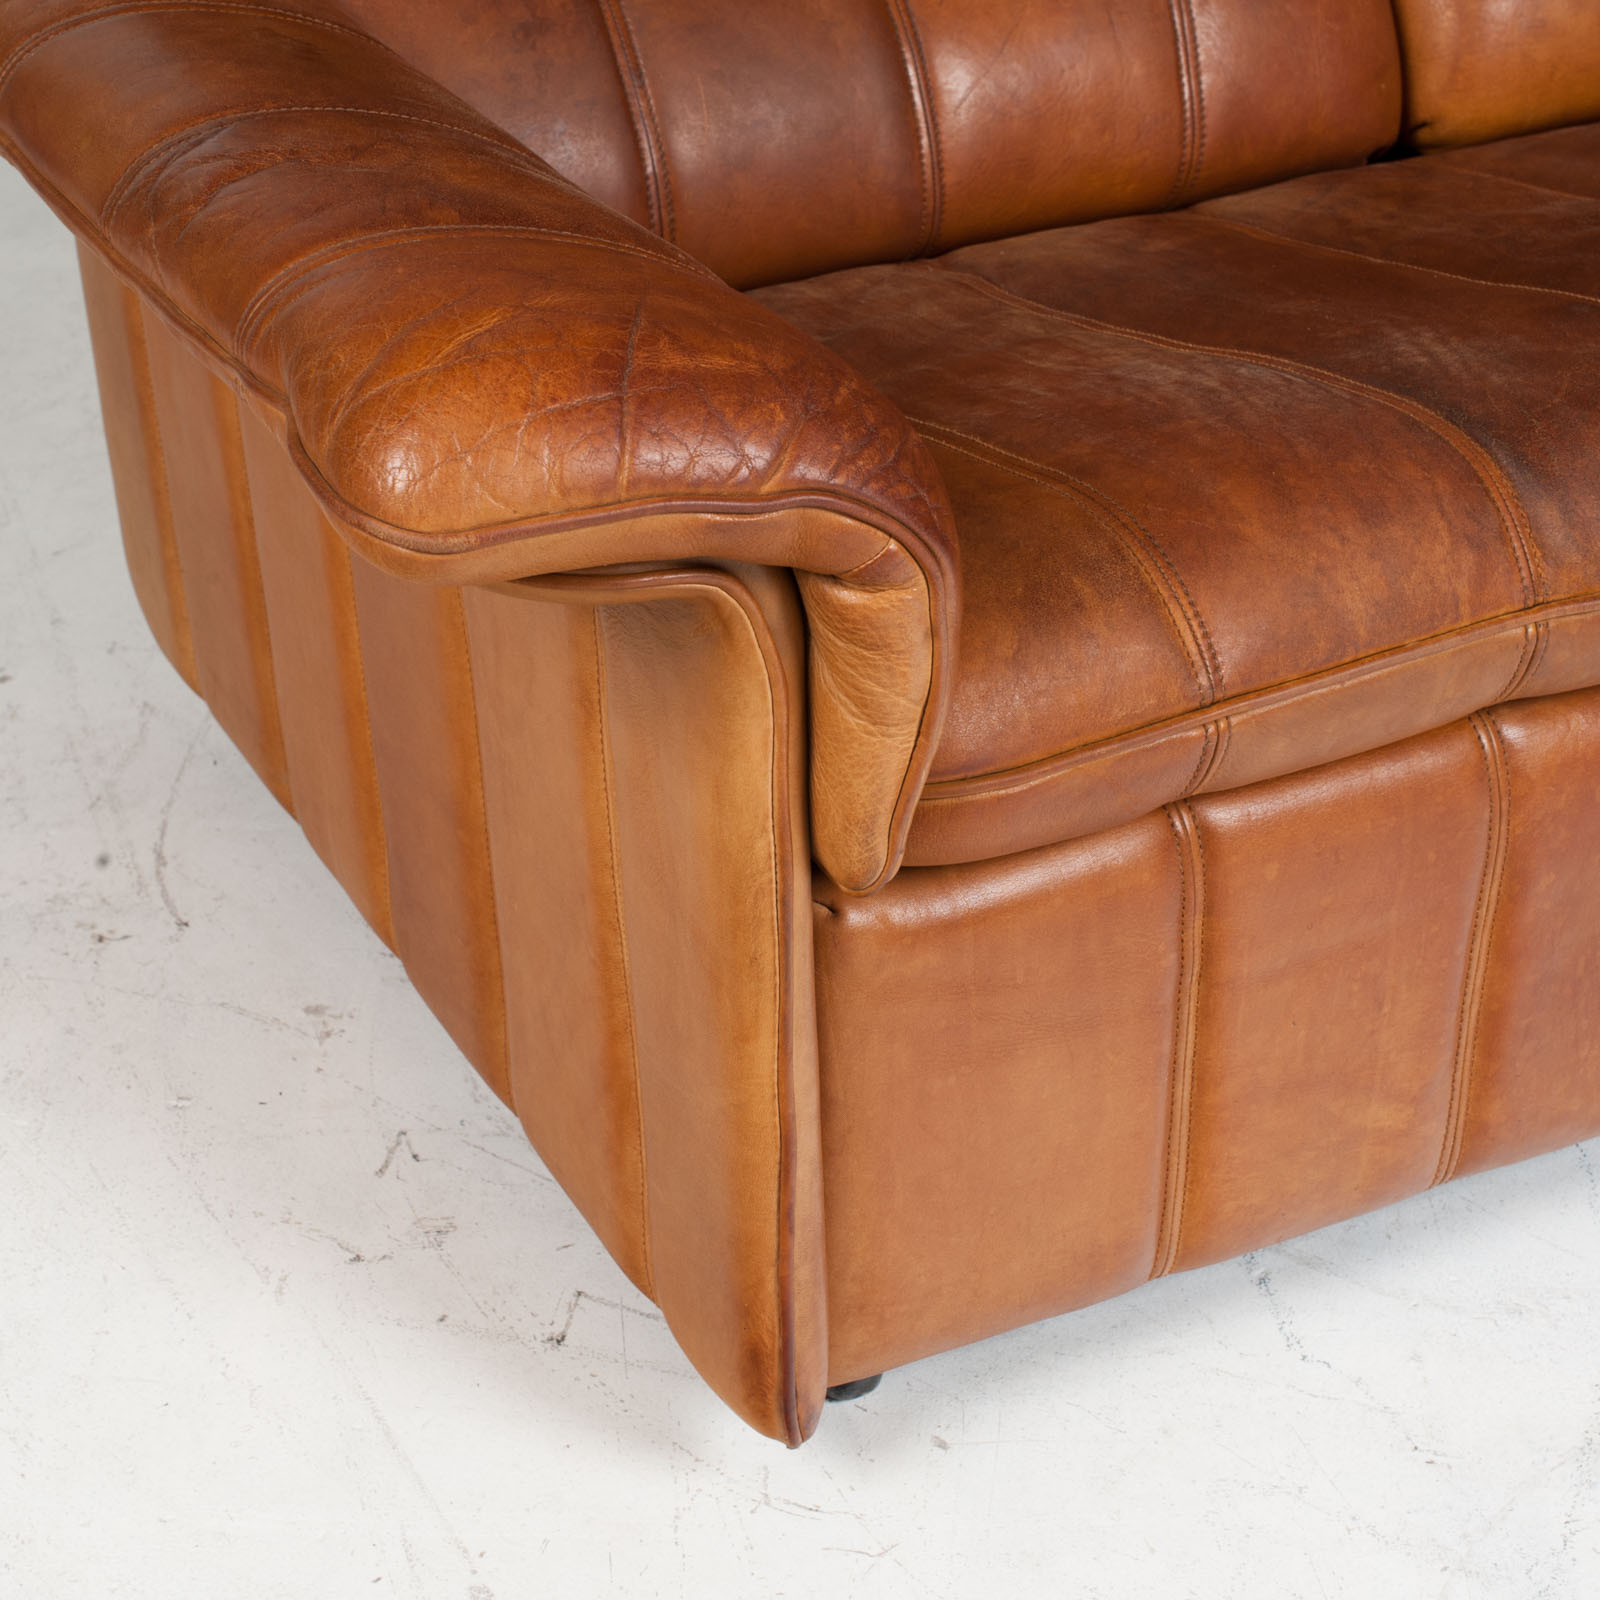 2 Seat Sofa By De Sede In Tan Leather 1970s Switzerland 04